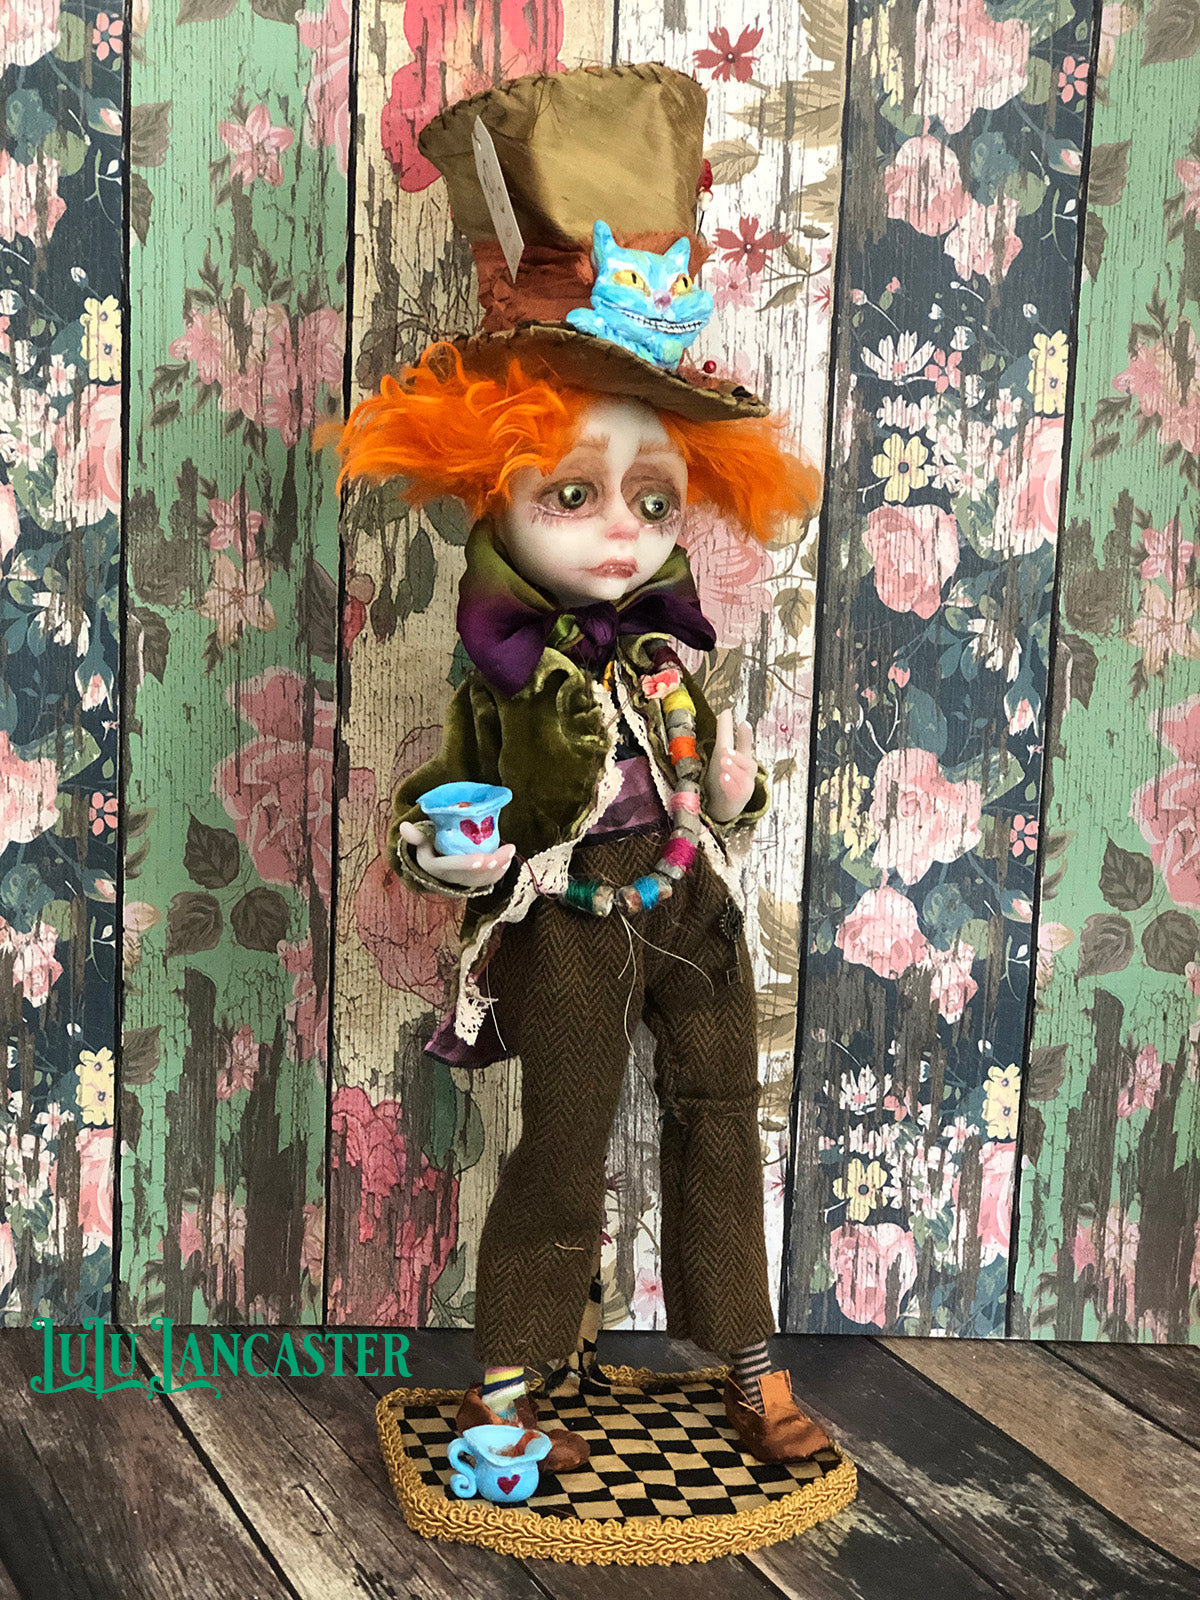 Little Hatter Wonderland OOAK Art Doll LuLu Lancaster